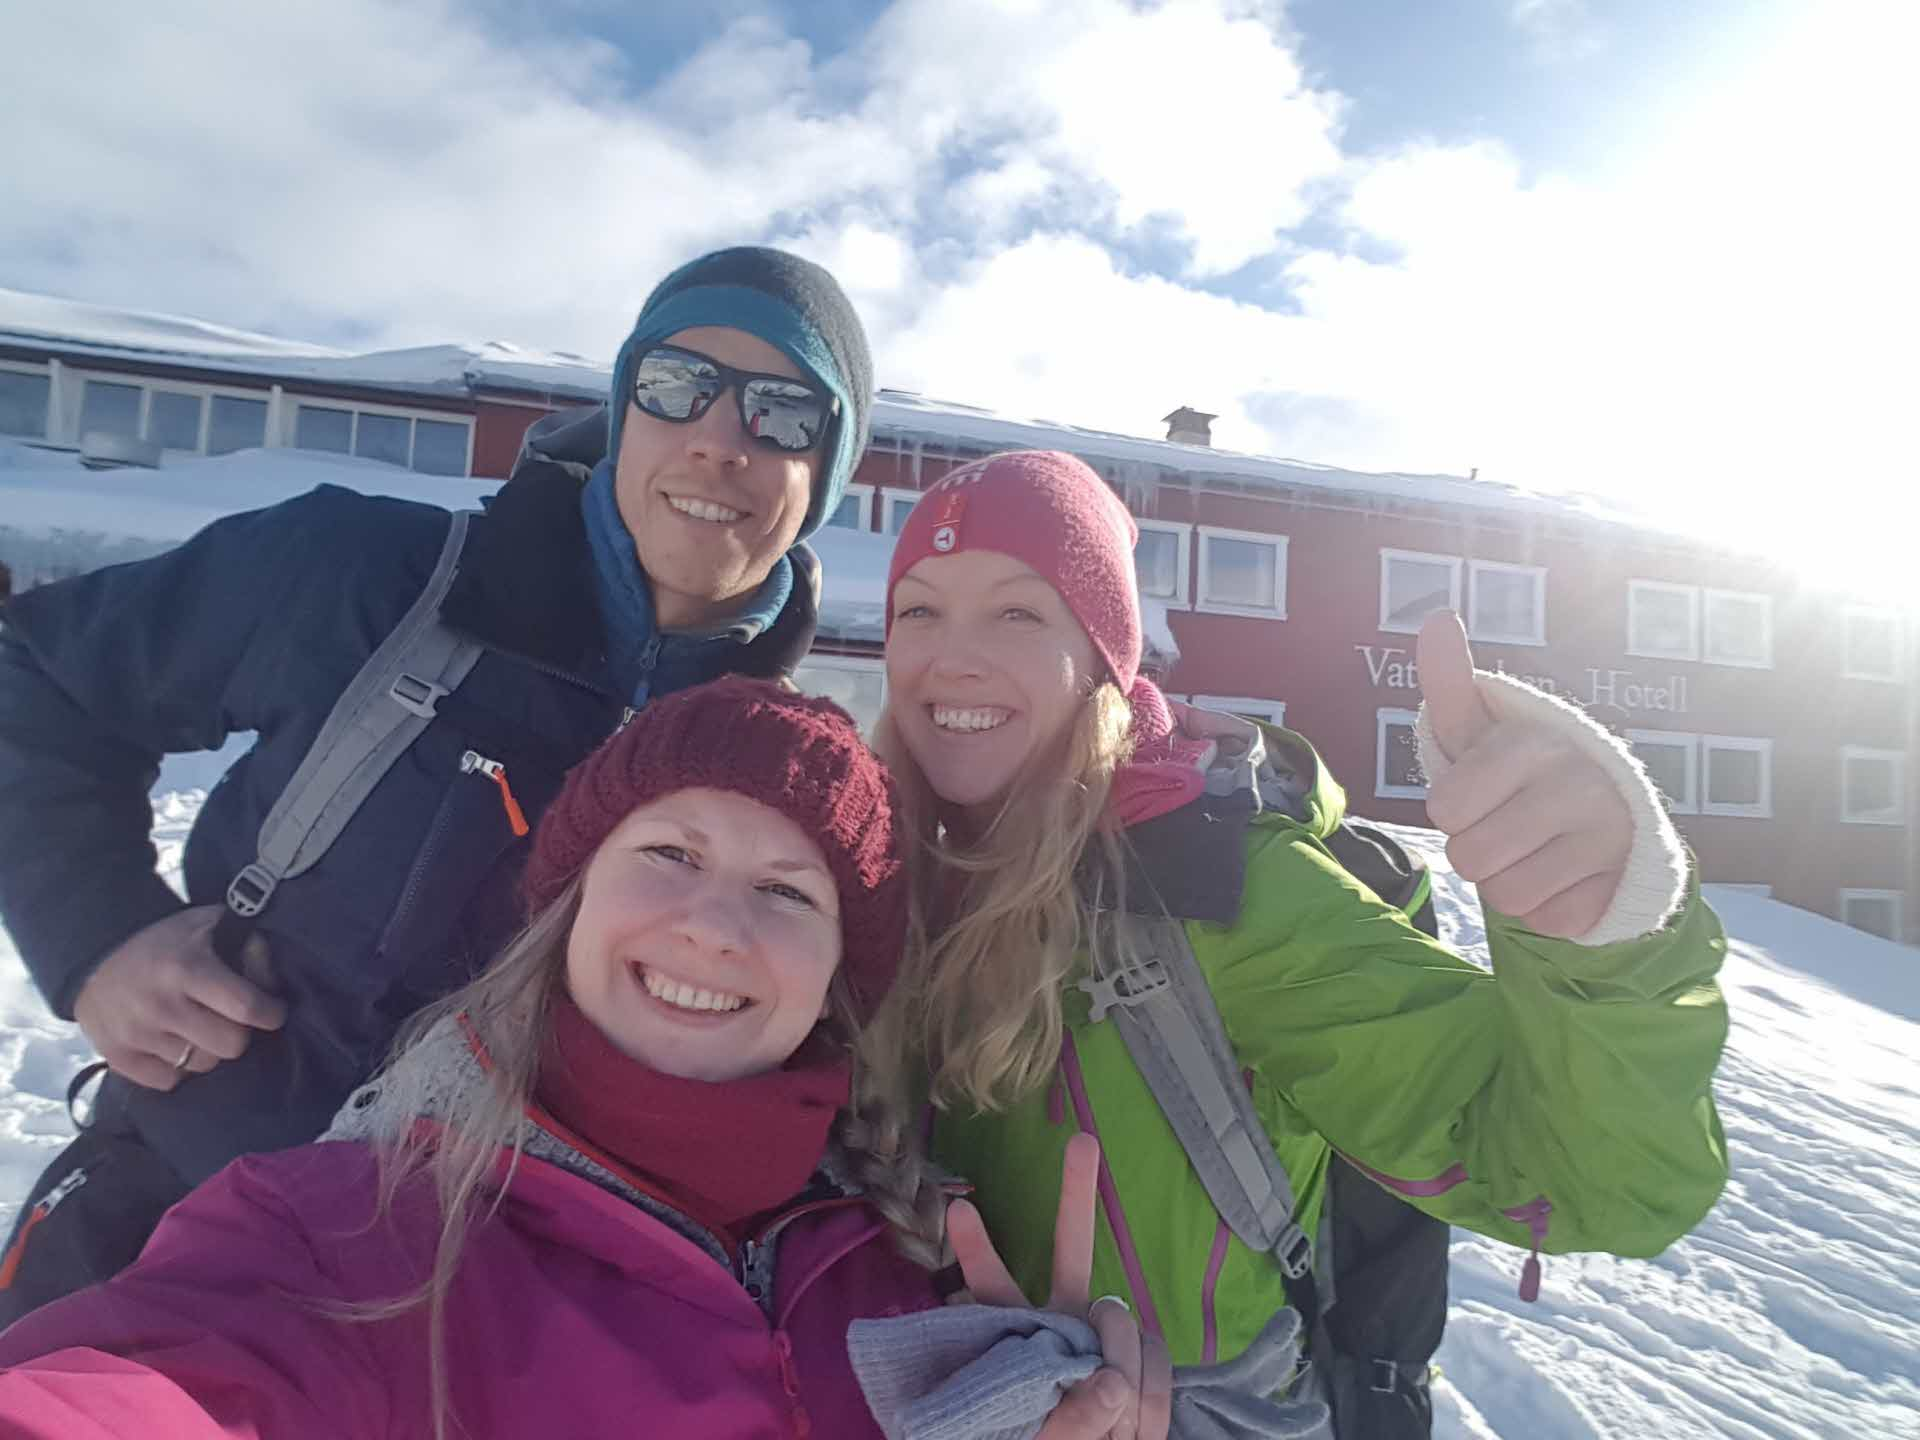 Close up happy man and two women in winter clothing in front of Vatnahalsen Hotel on a sunny winter day